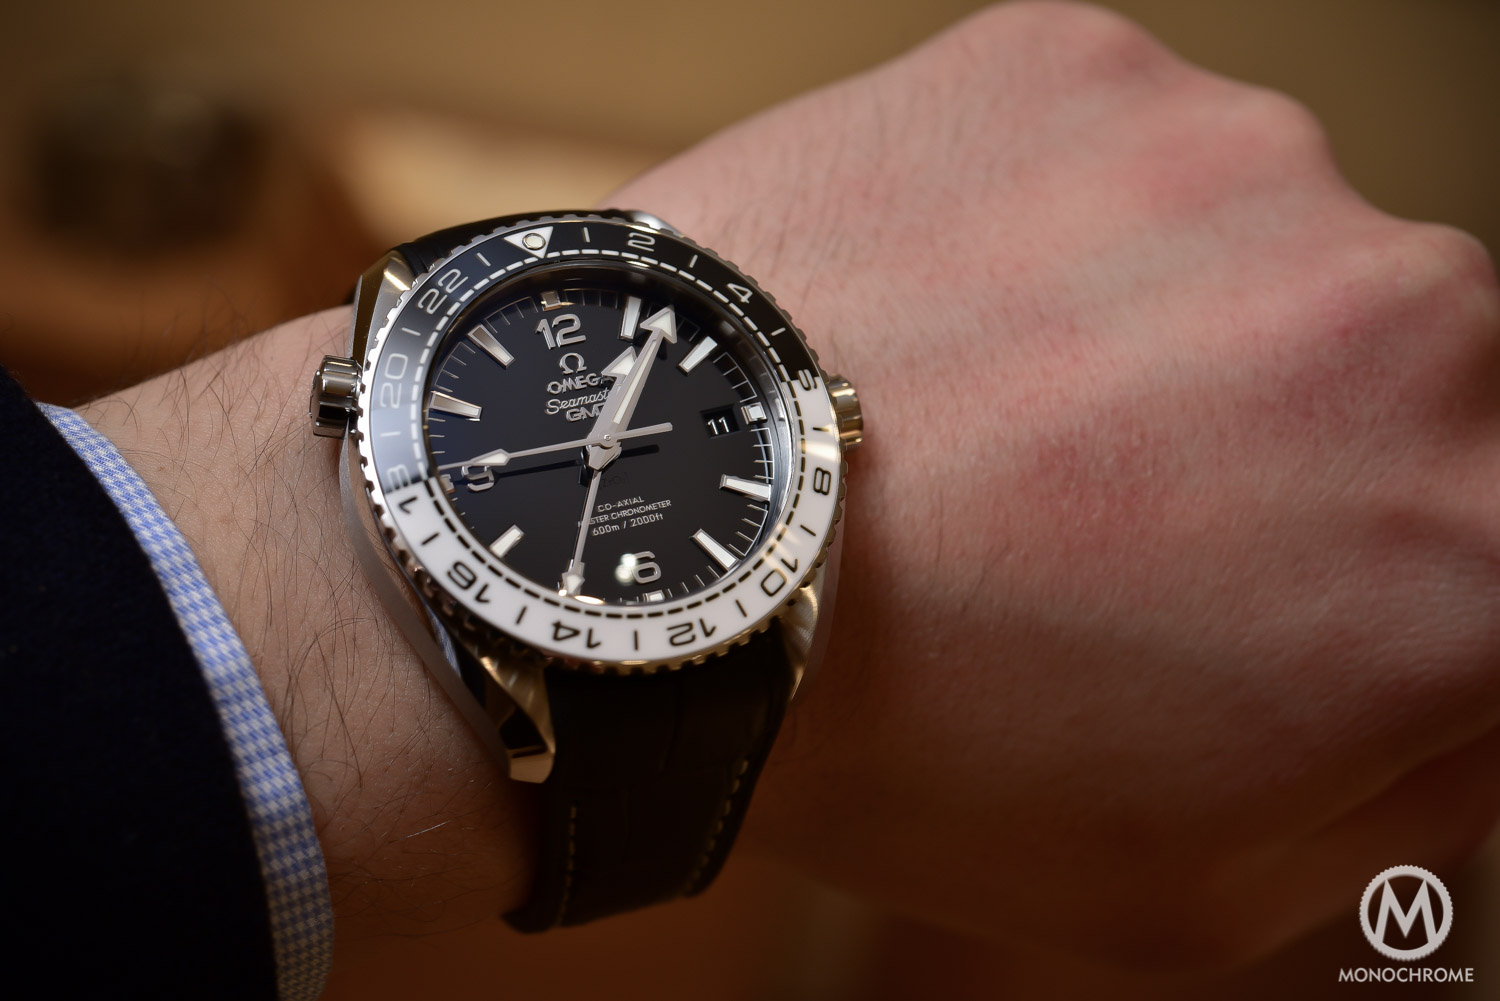 856124509ce3 Introducing the new Omega Seamaster Planet Ocean GMT with Master ...